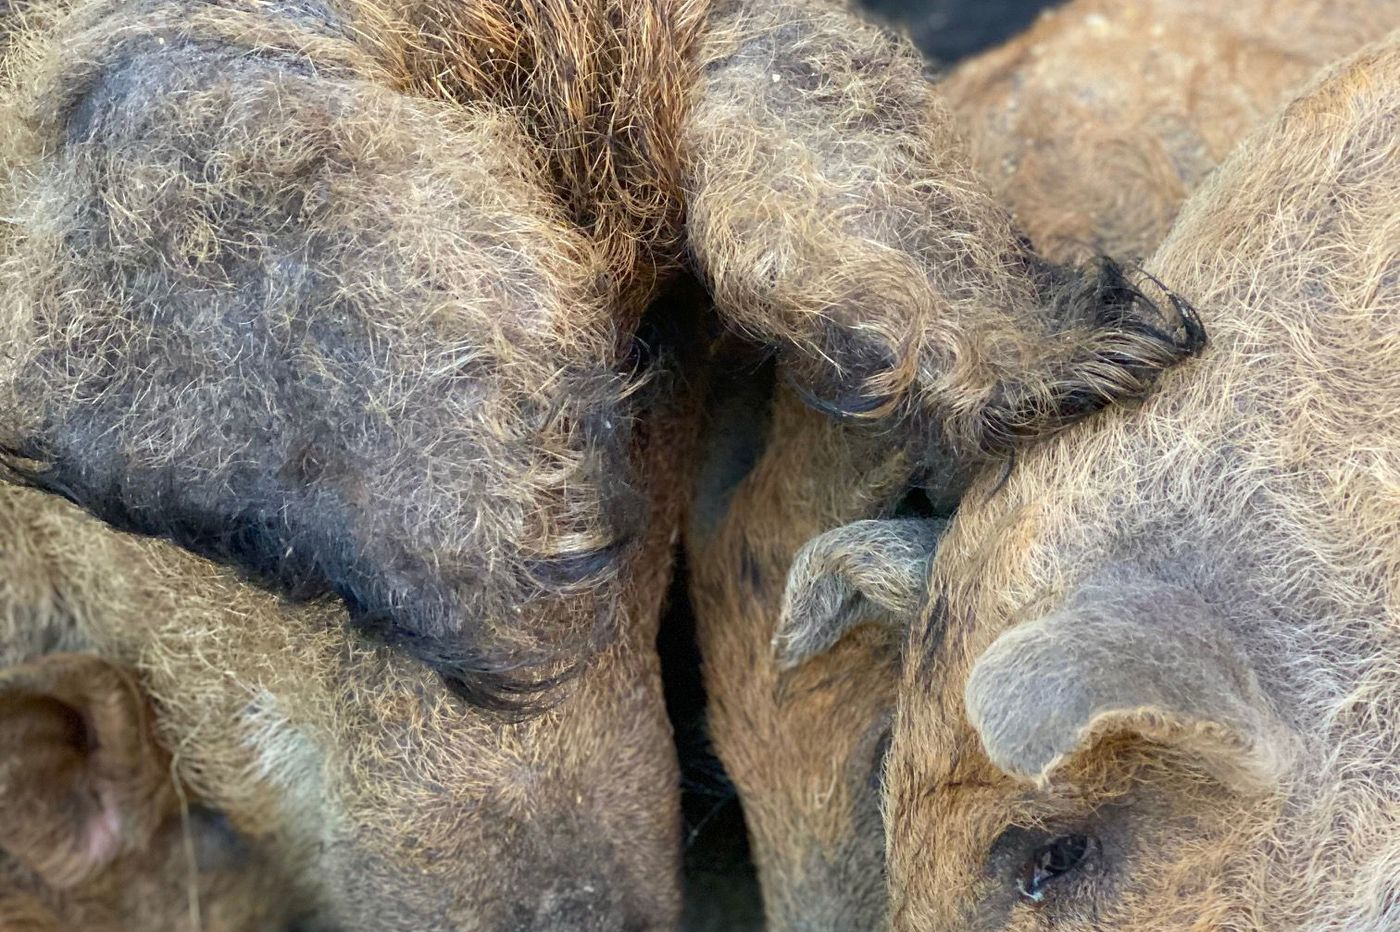 At a Lititz farm, rare Mangalitsa pigs are raised for Philly restaurants and retail sale